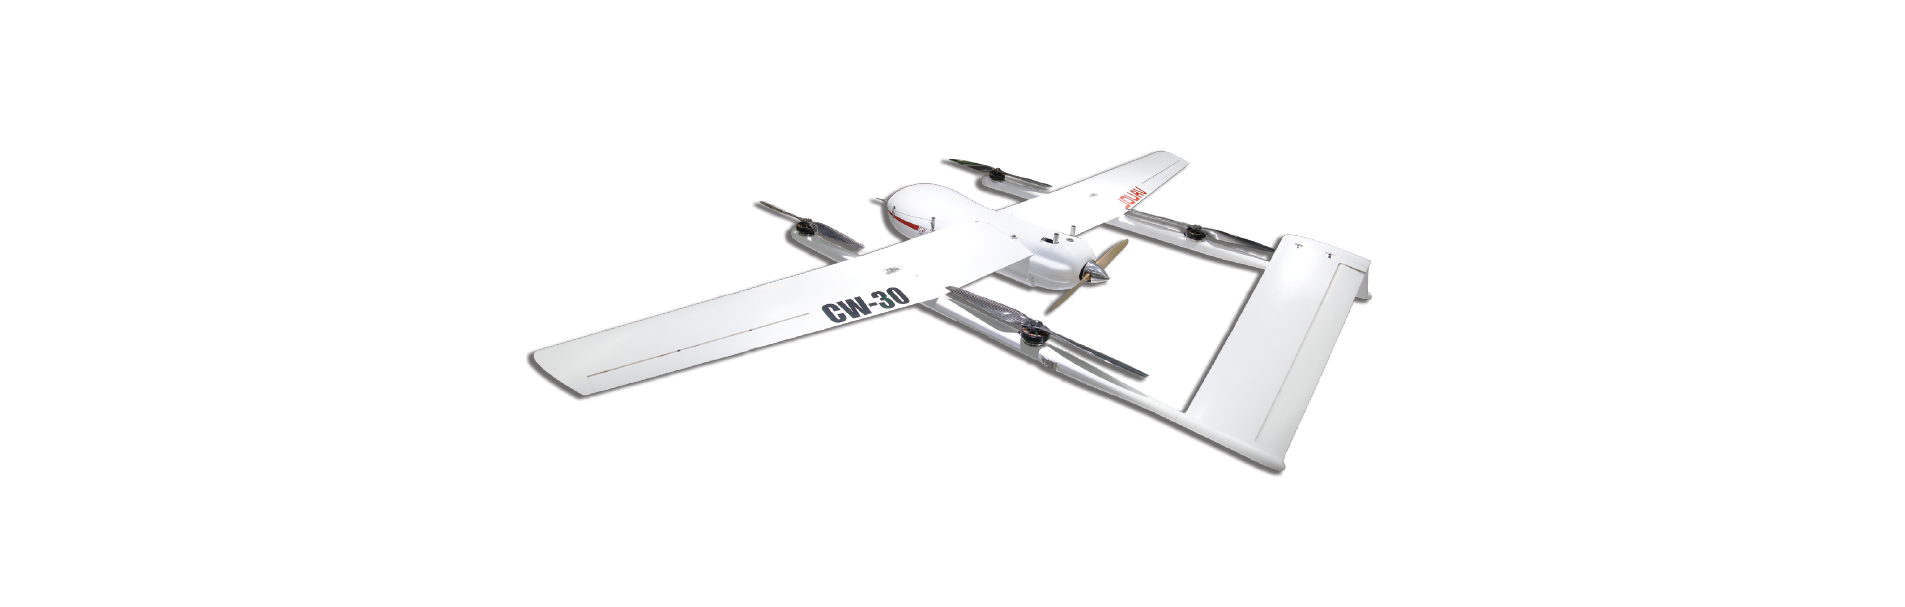 VOLT Fixed Wing Air Craft hybrid electric 6hours flight time